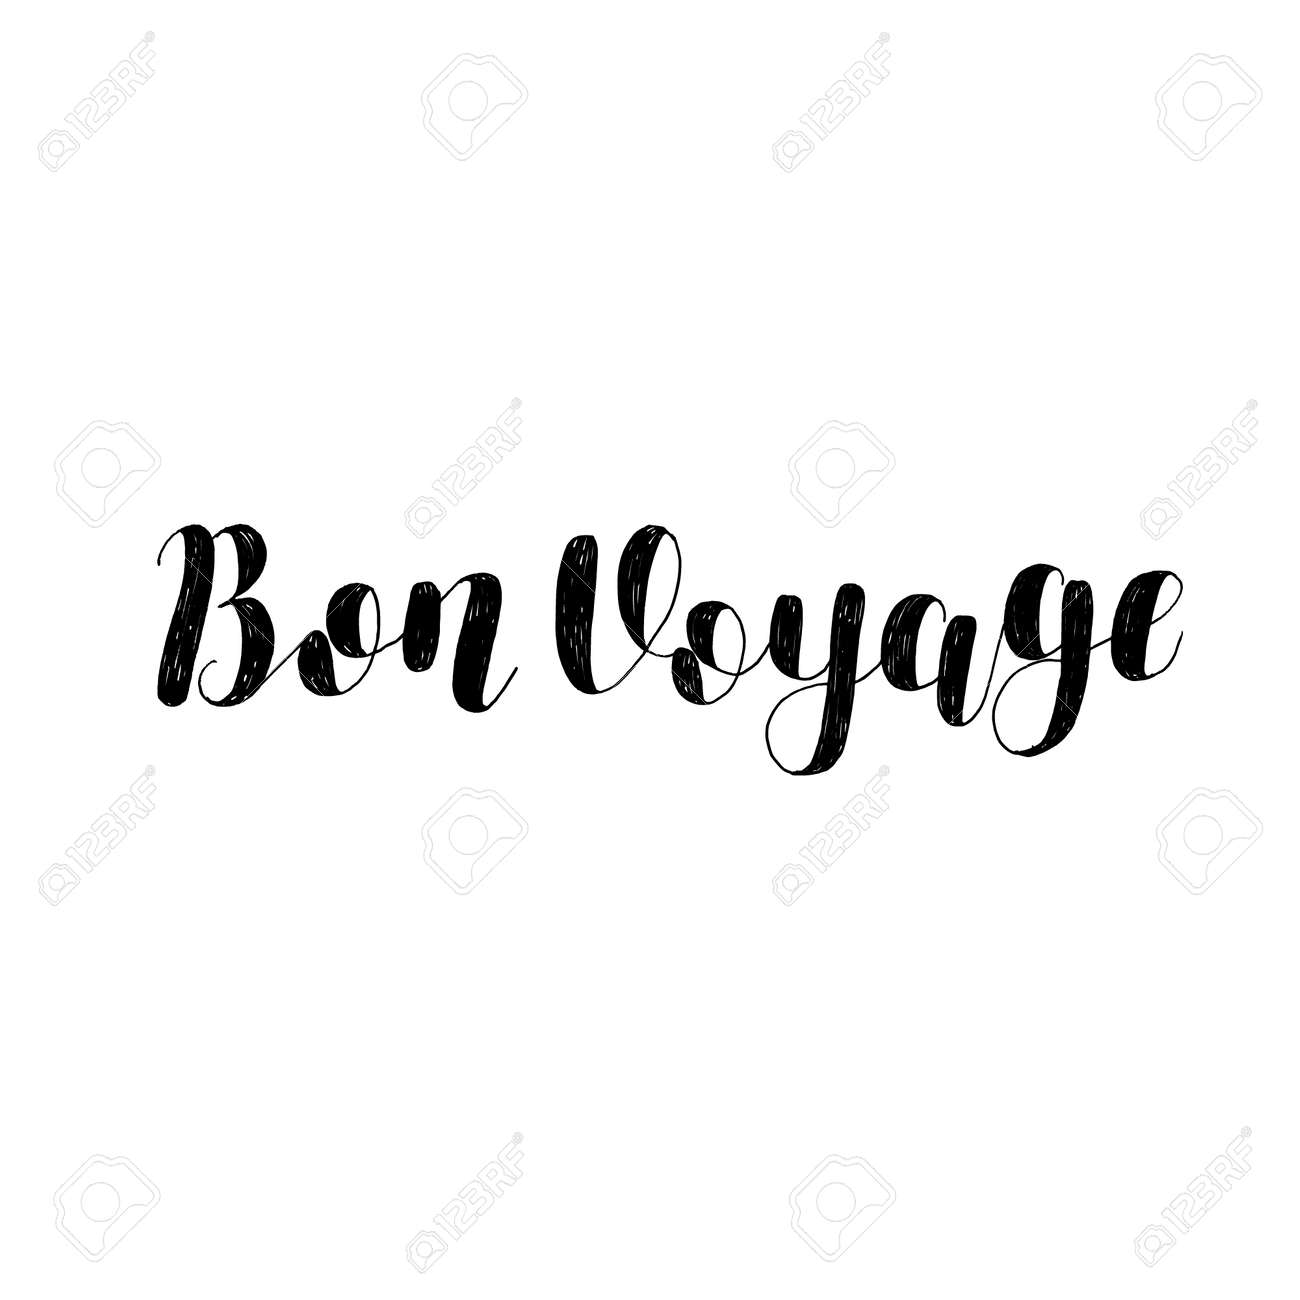 Bon Voyage Brush Lettering Illustration Inspiring Quote Motivating Royalty Free Cliparts Vectors And Stock Illustration Image 66693923